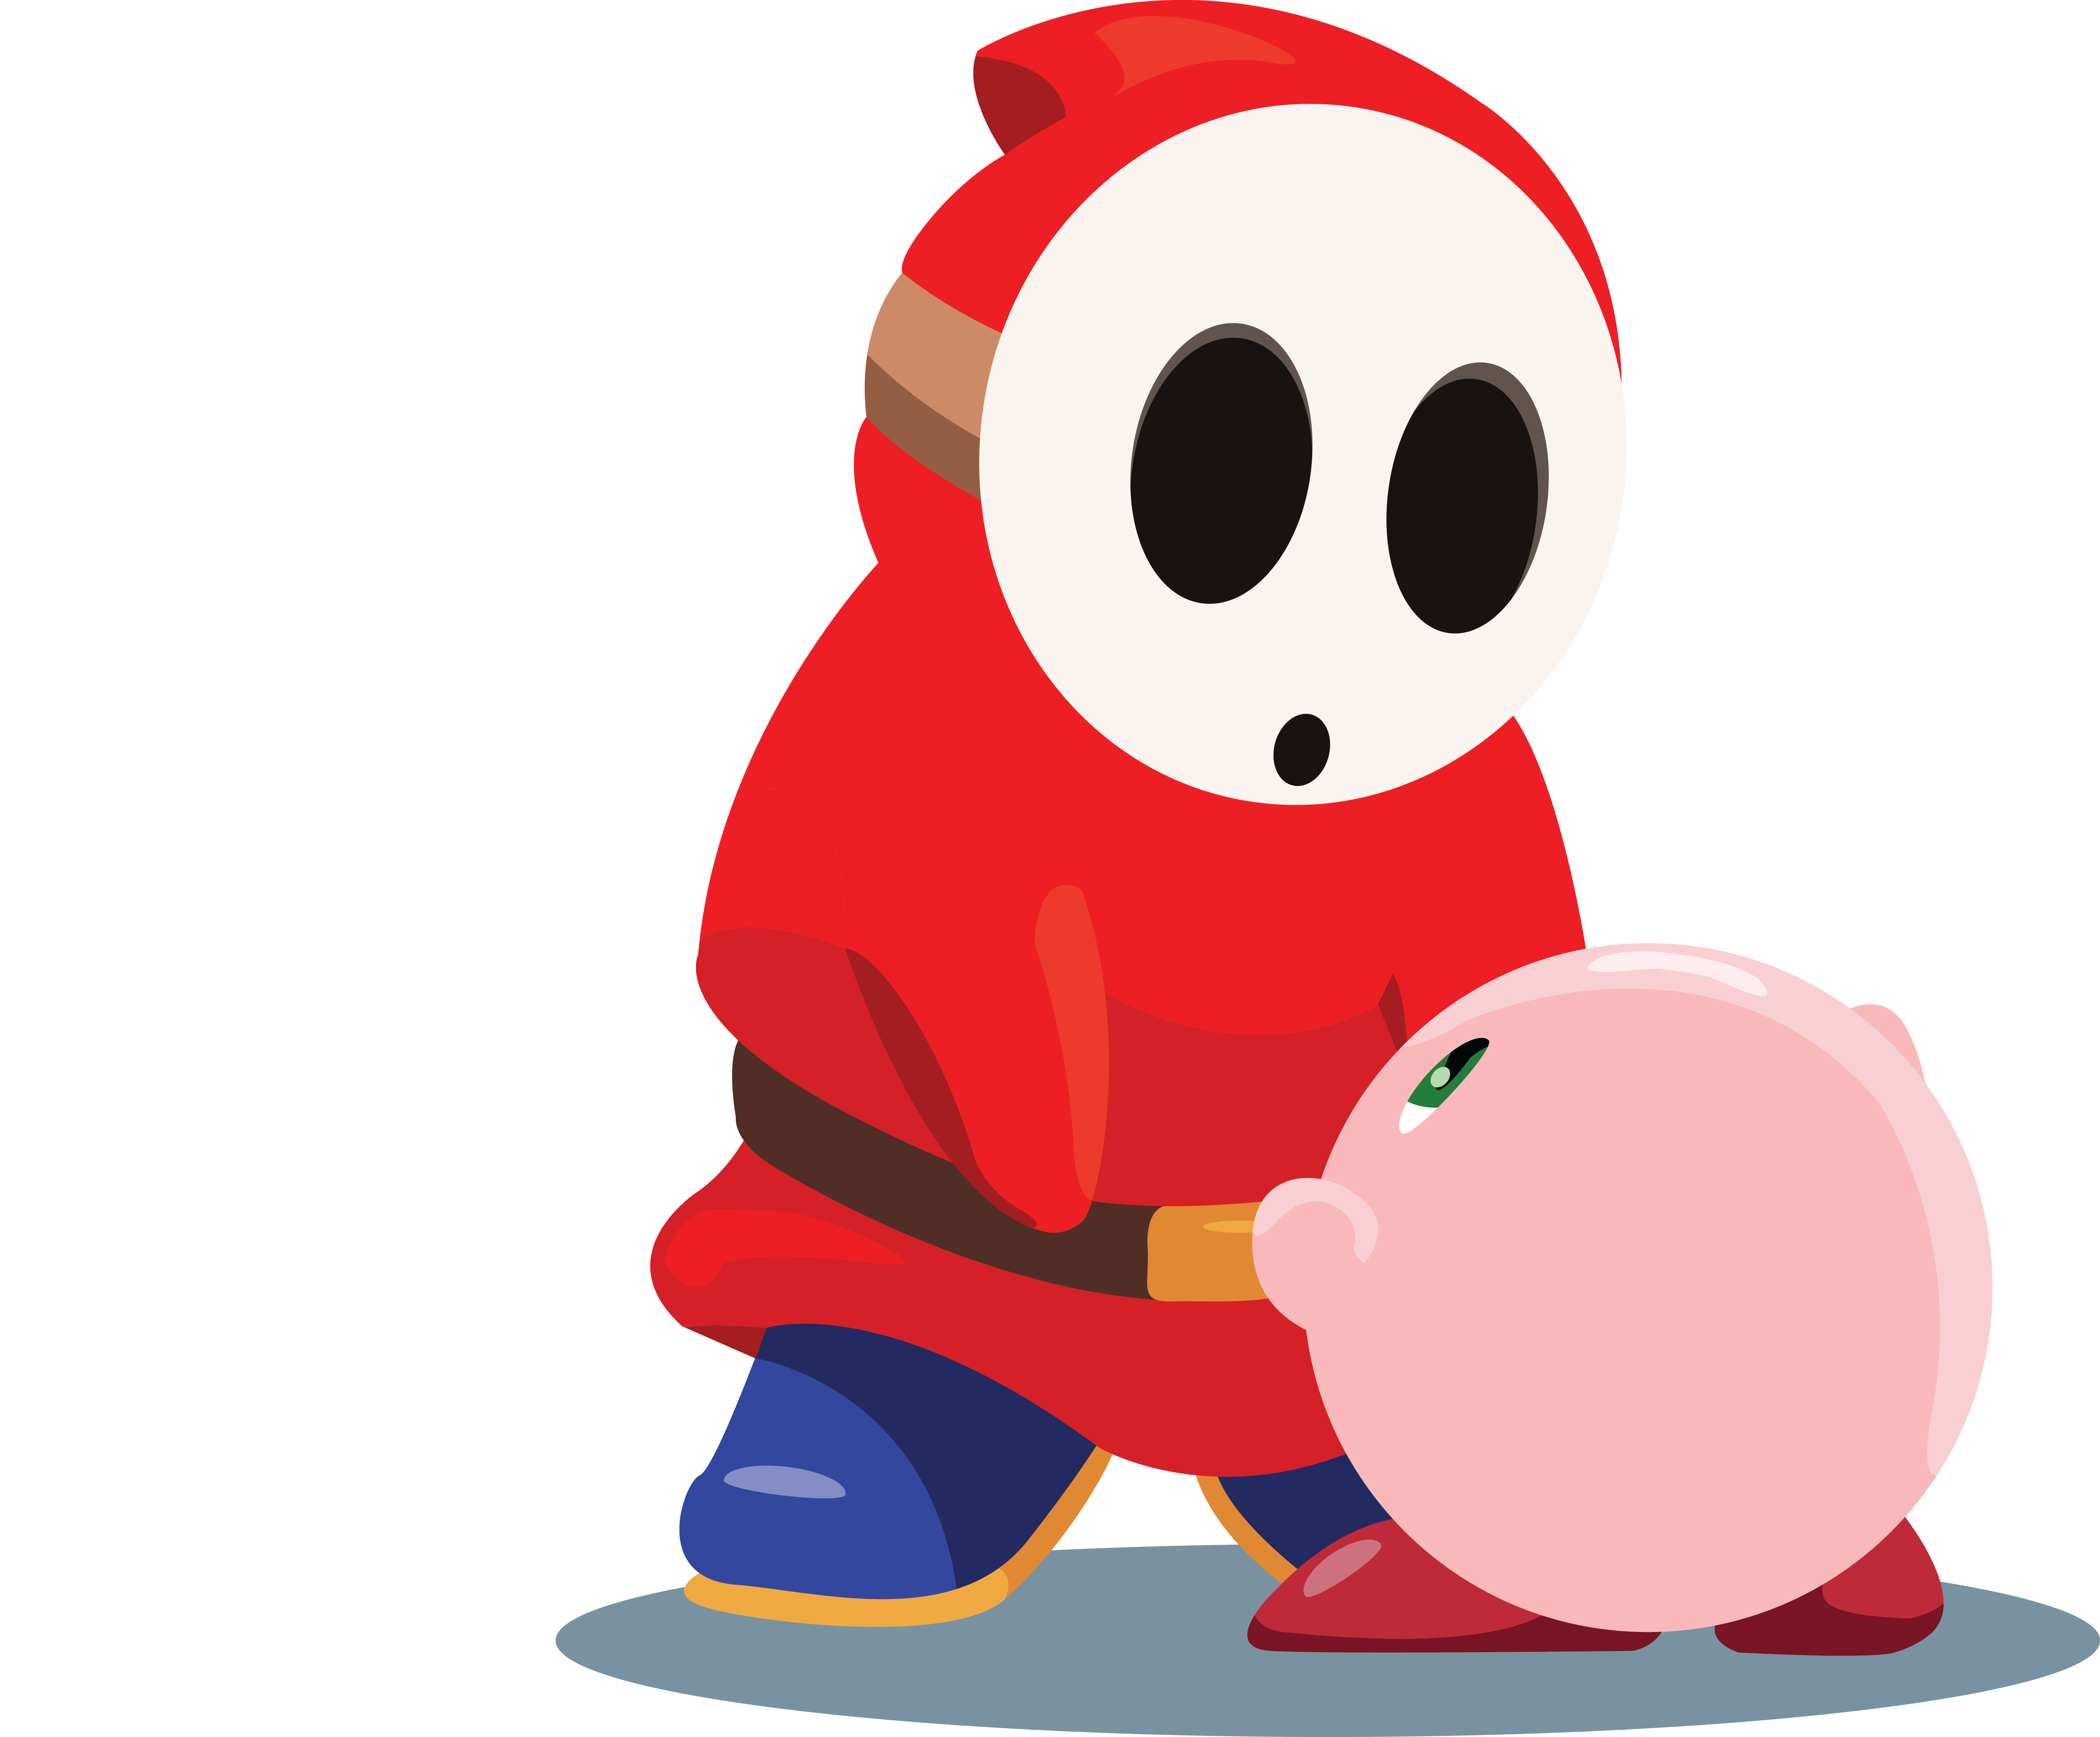 And kirby by theneverendingpit. Shy clipart shy guy